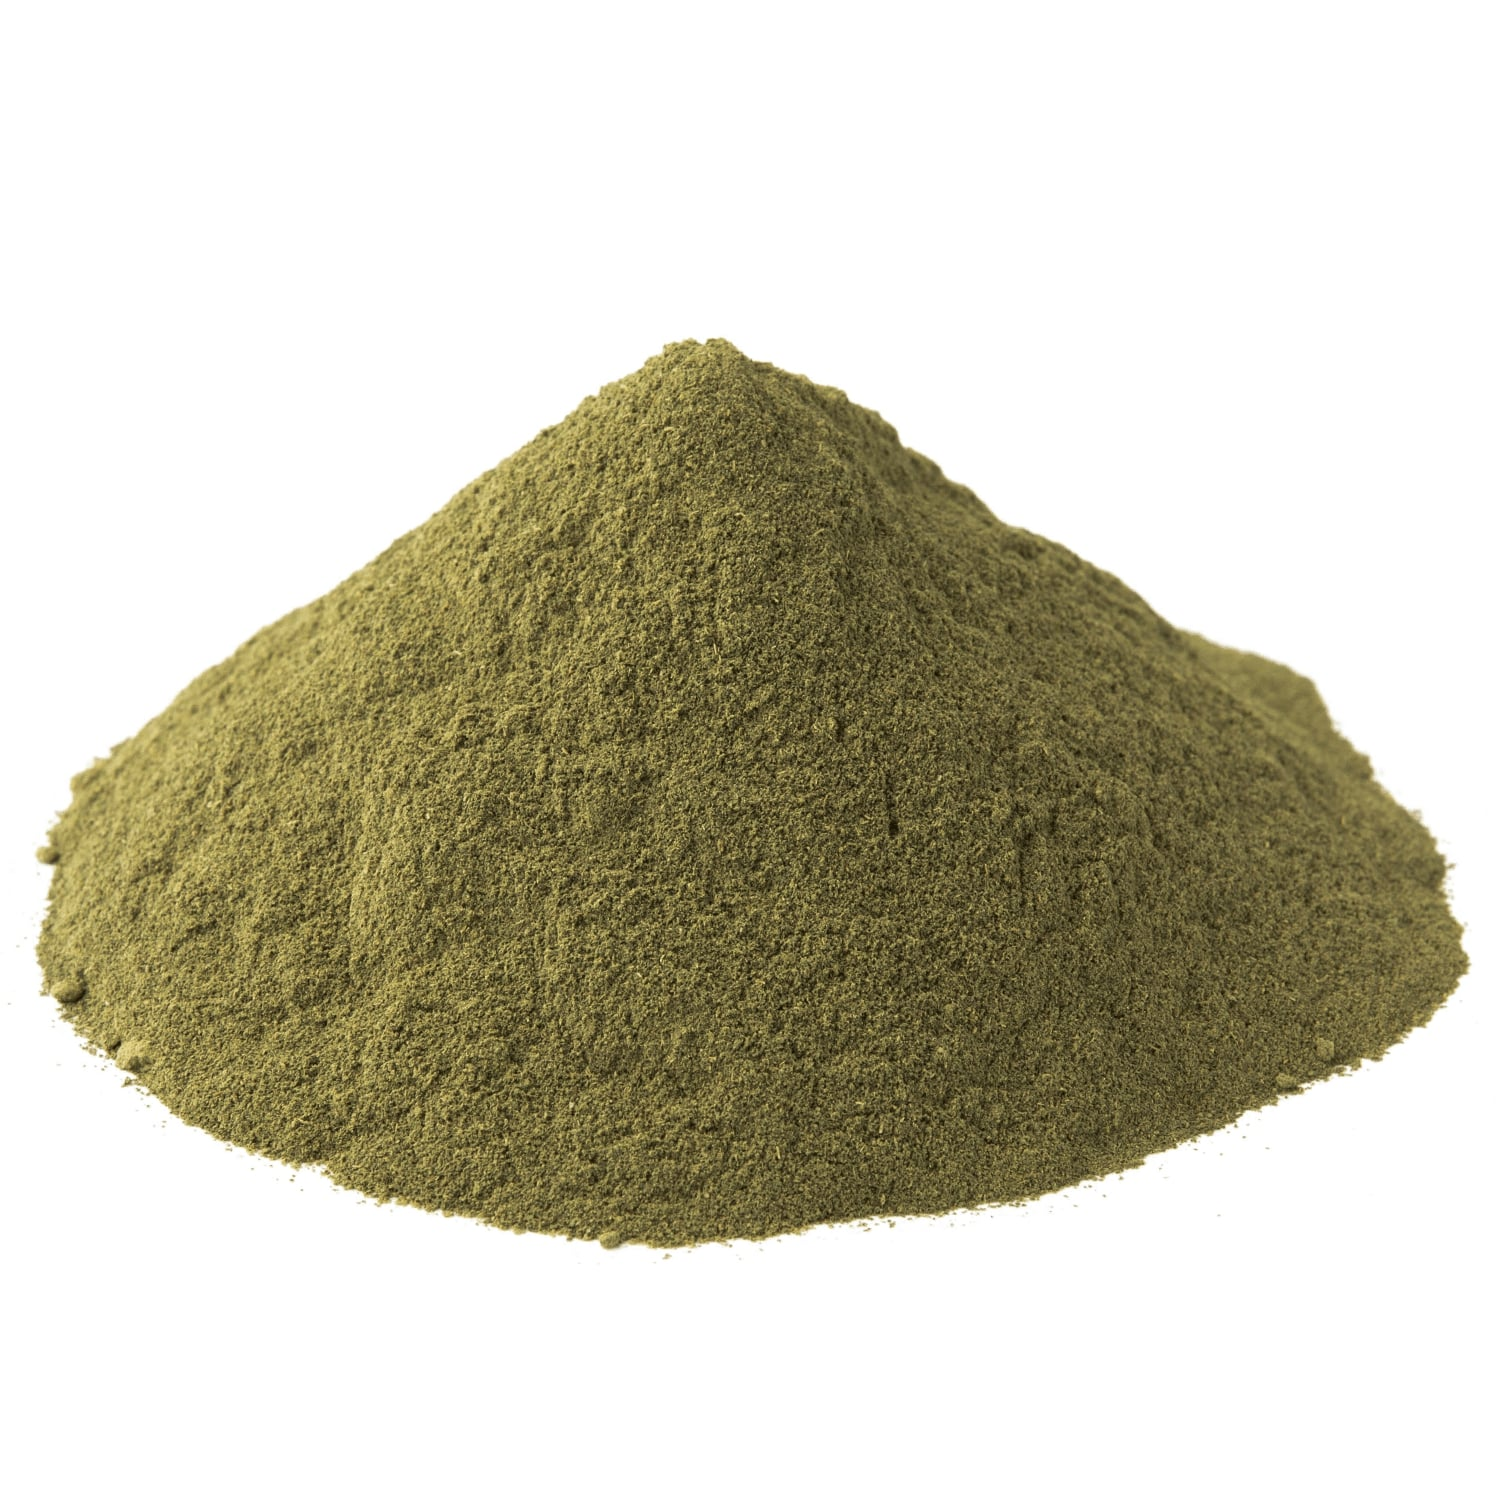 Super Green Malay Kratom for Sale